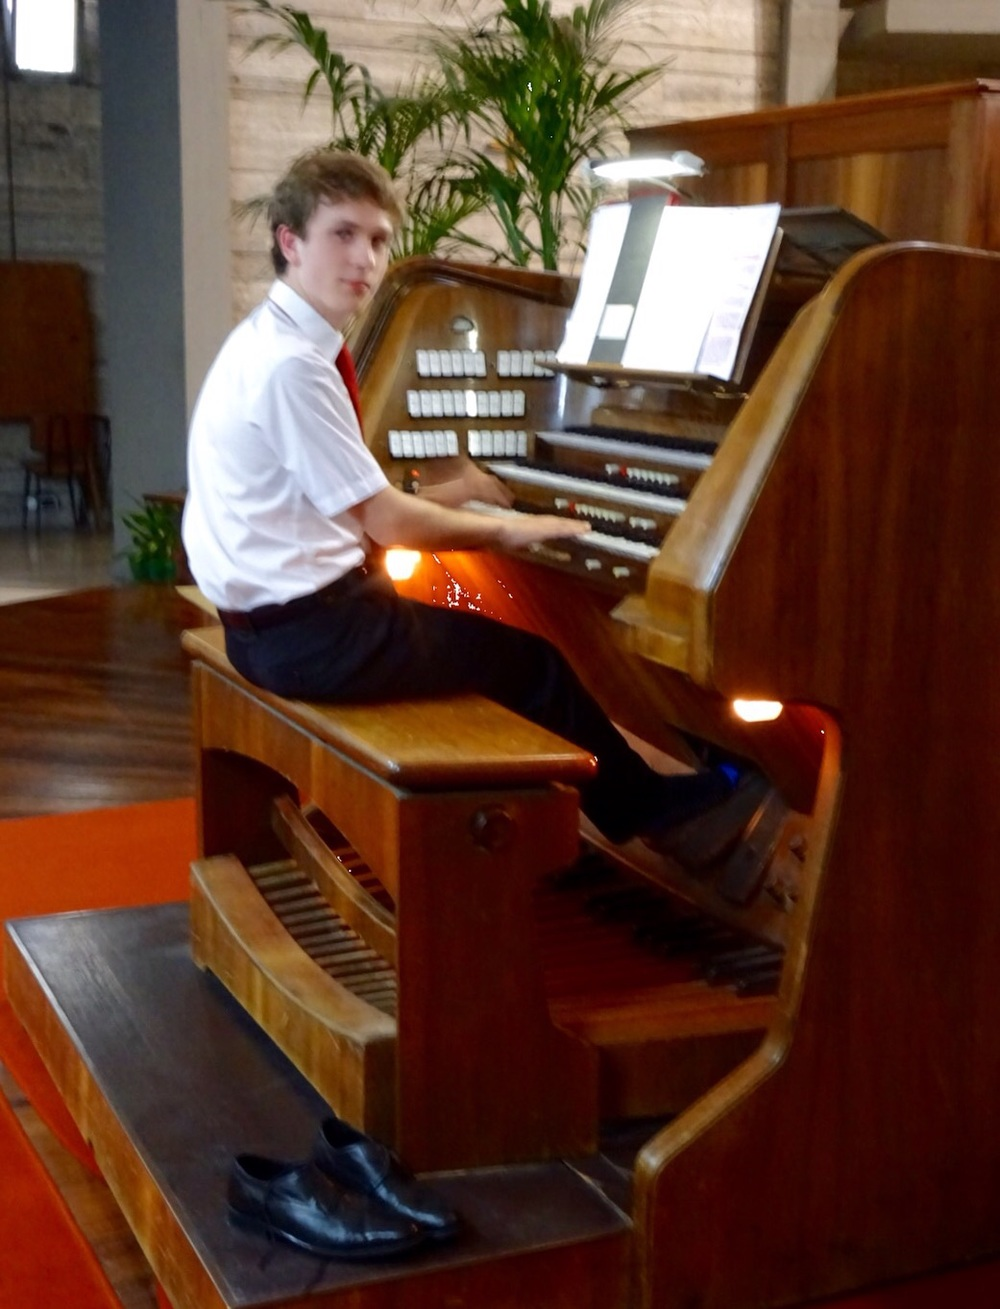 The shoeless organist entertains